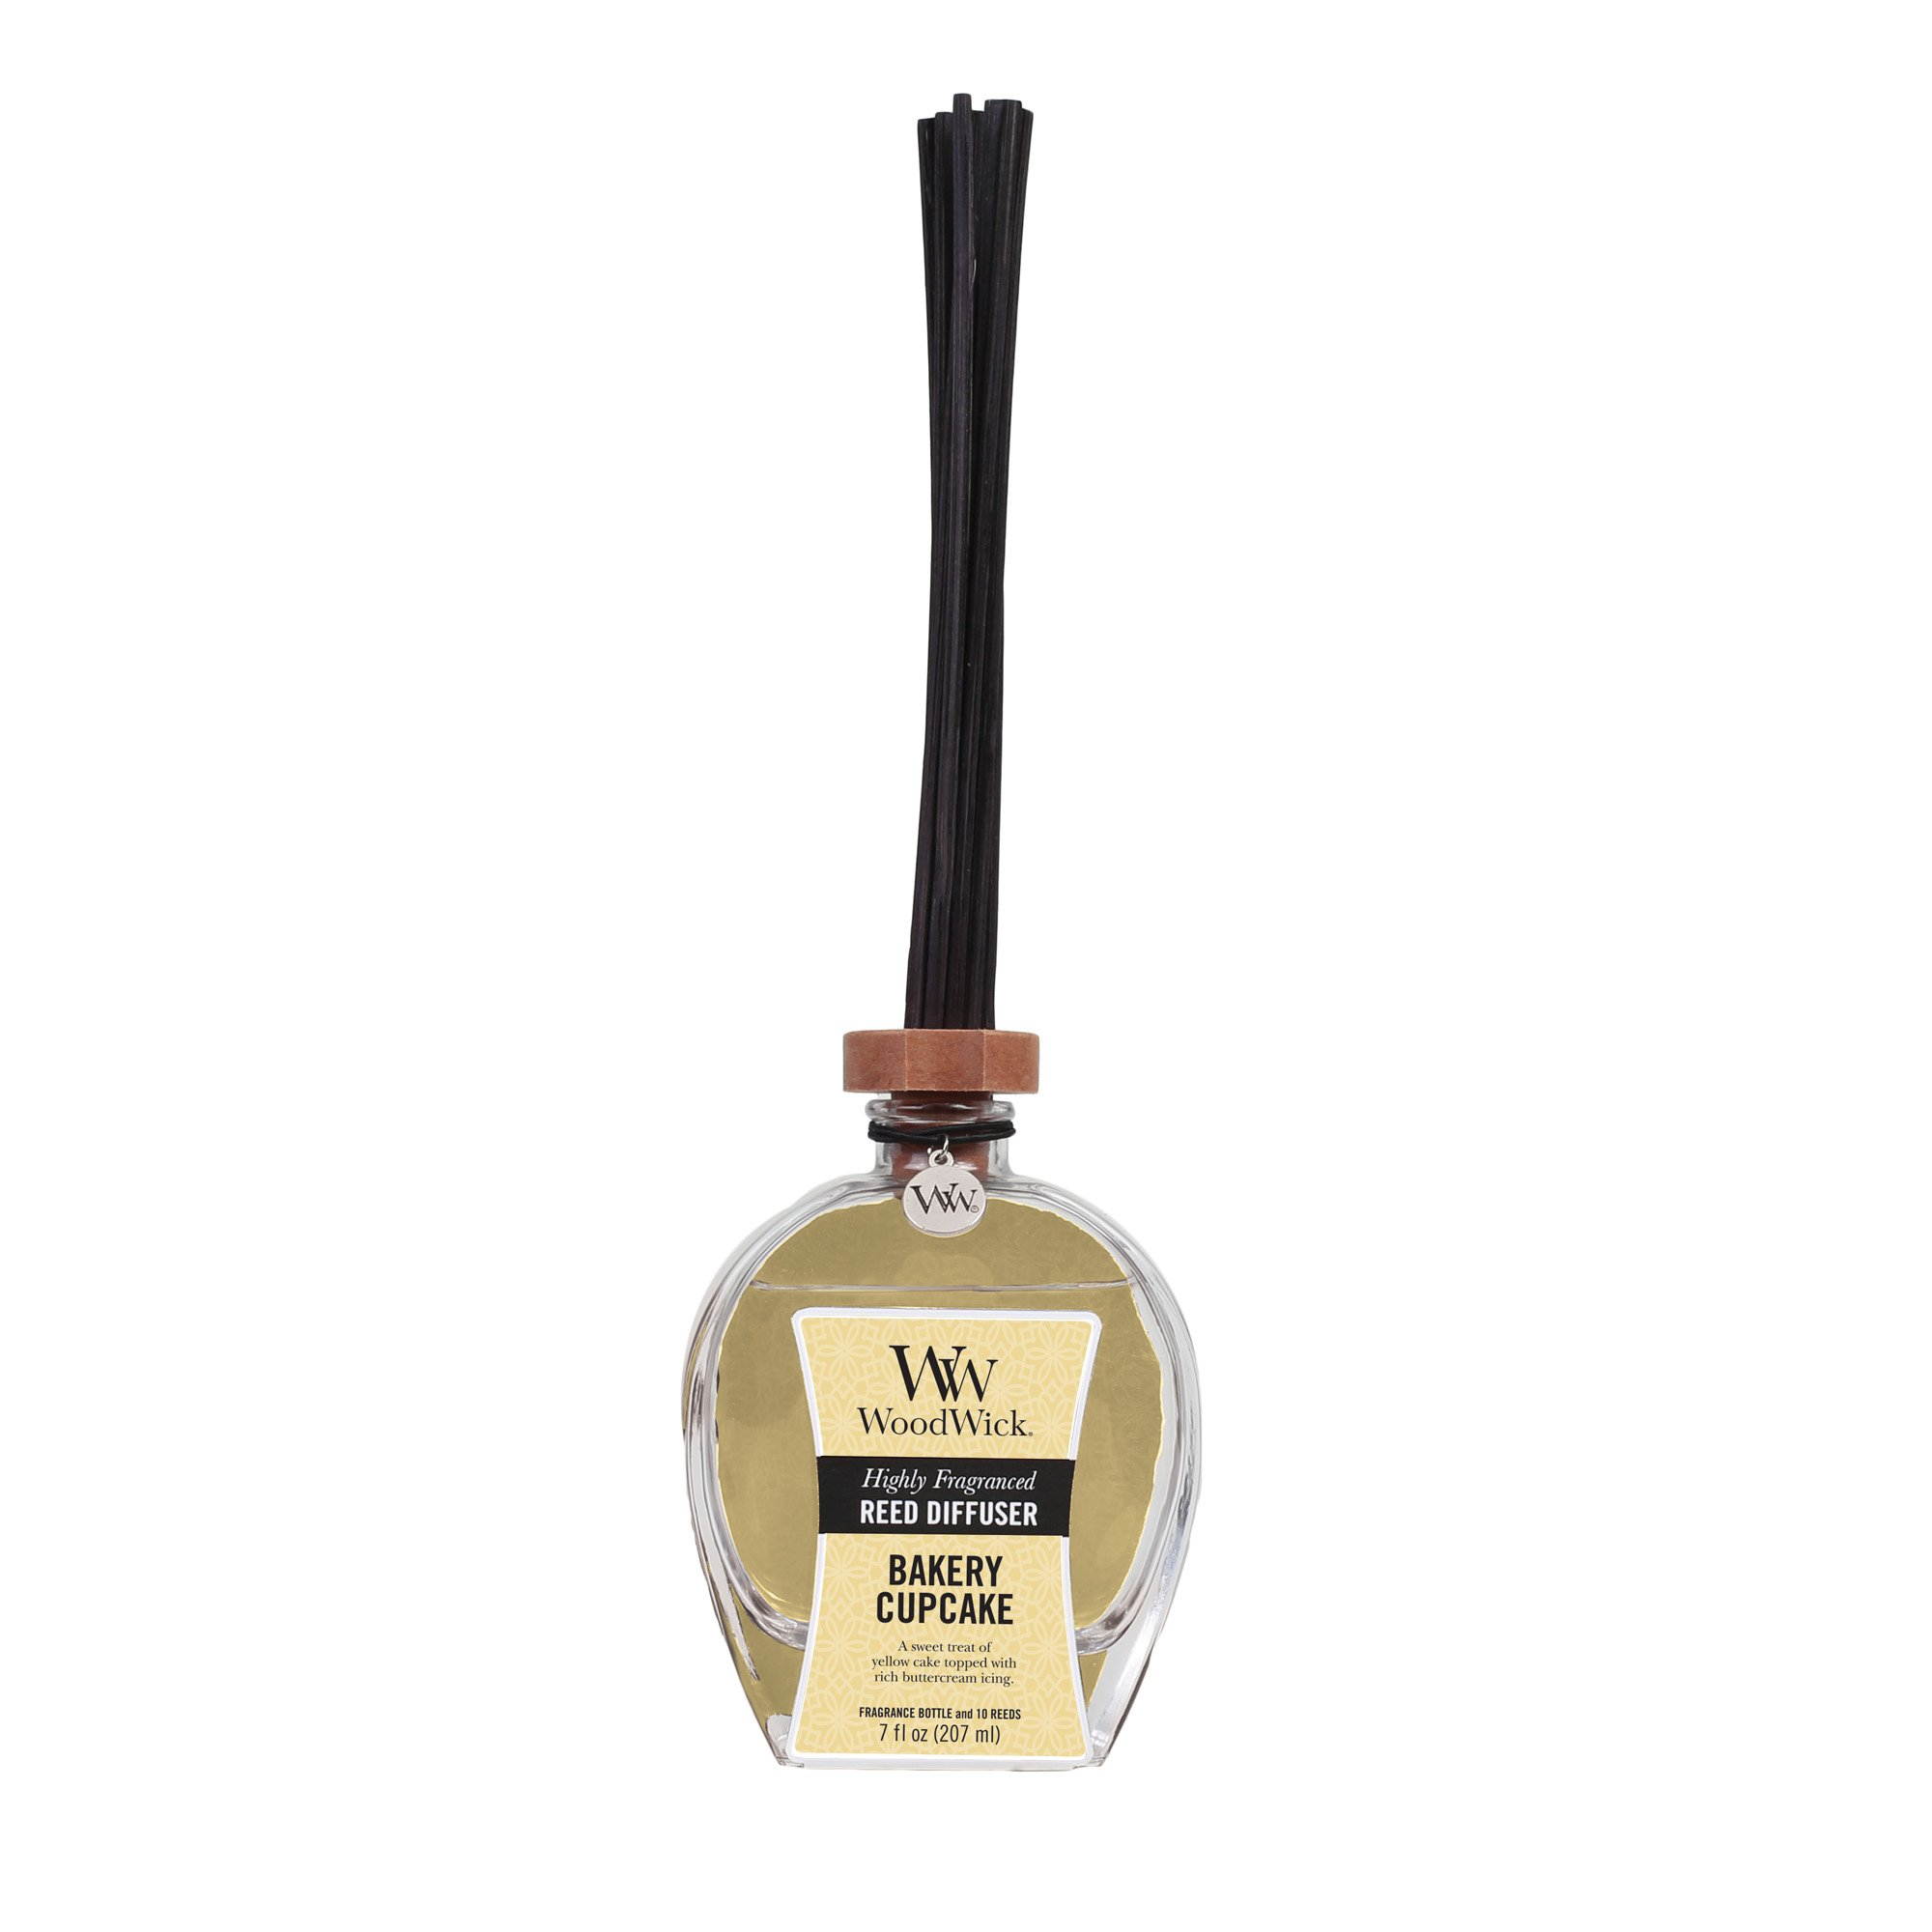 Woodwick Candle Reed Diffuser 7 Oz. - Bakery Cupcake by WoodWick (Image #1)